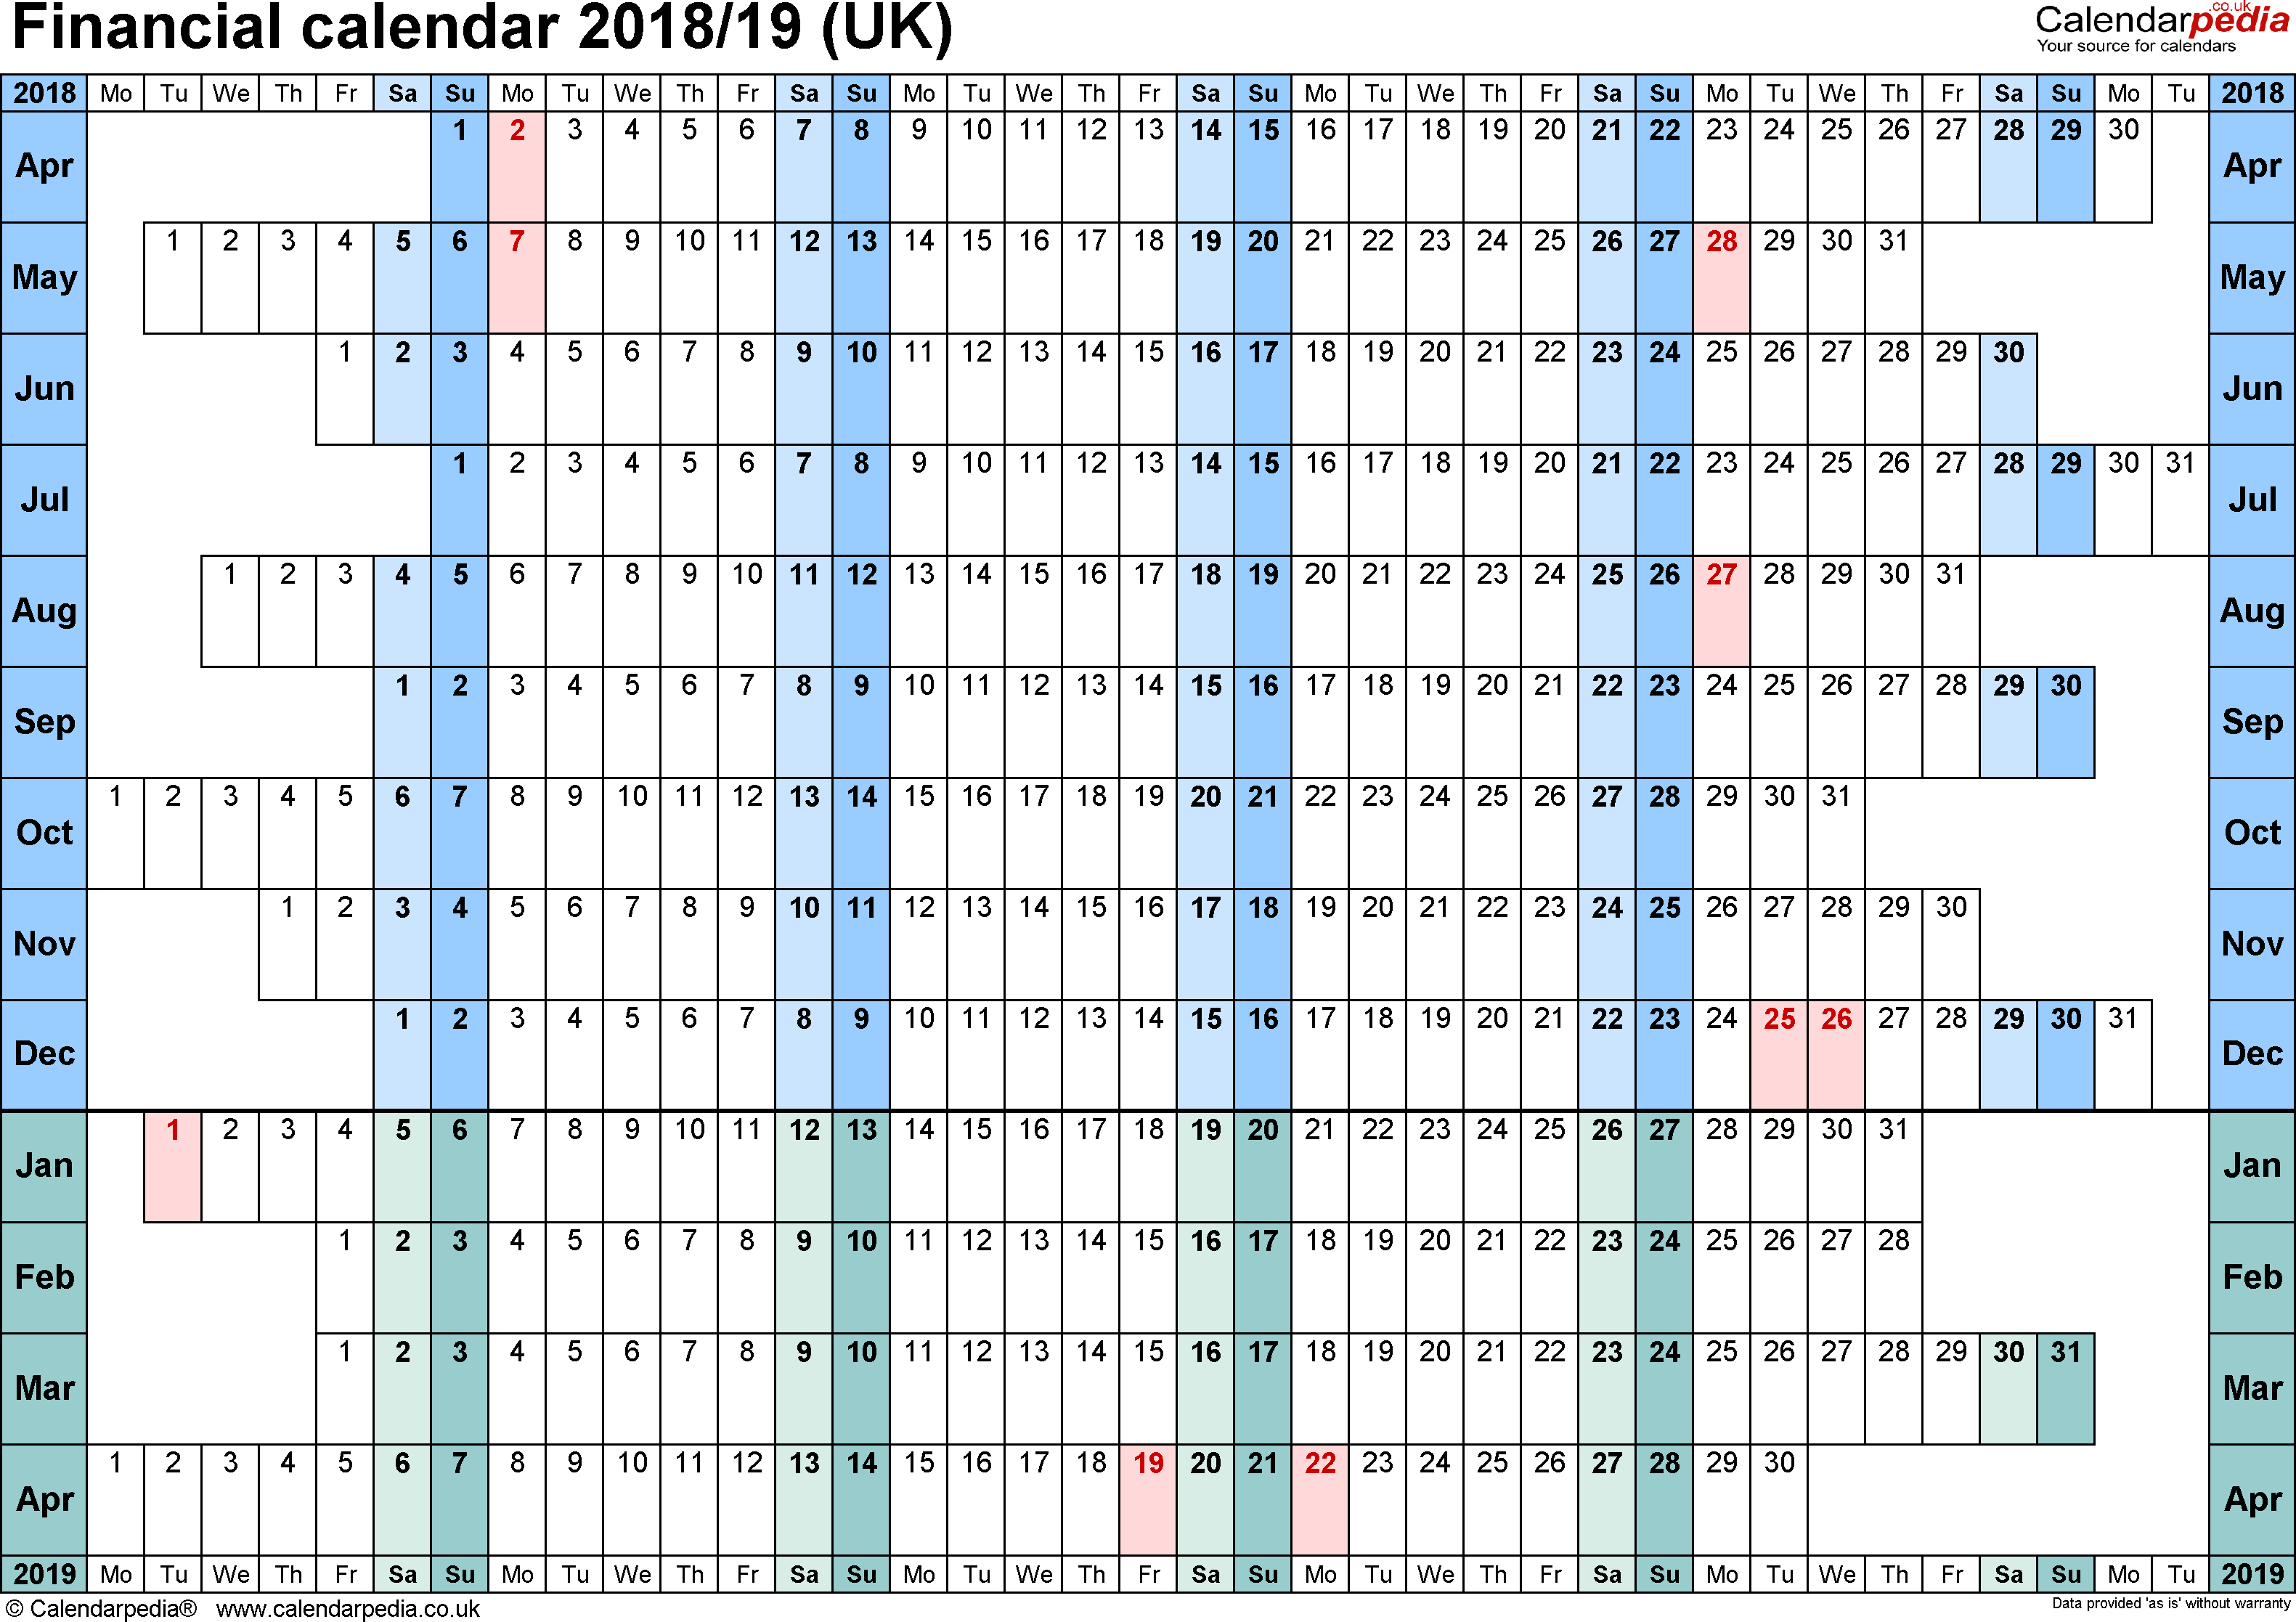 Financial Calendars 2018 19 Uk In Pdf Format